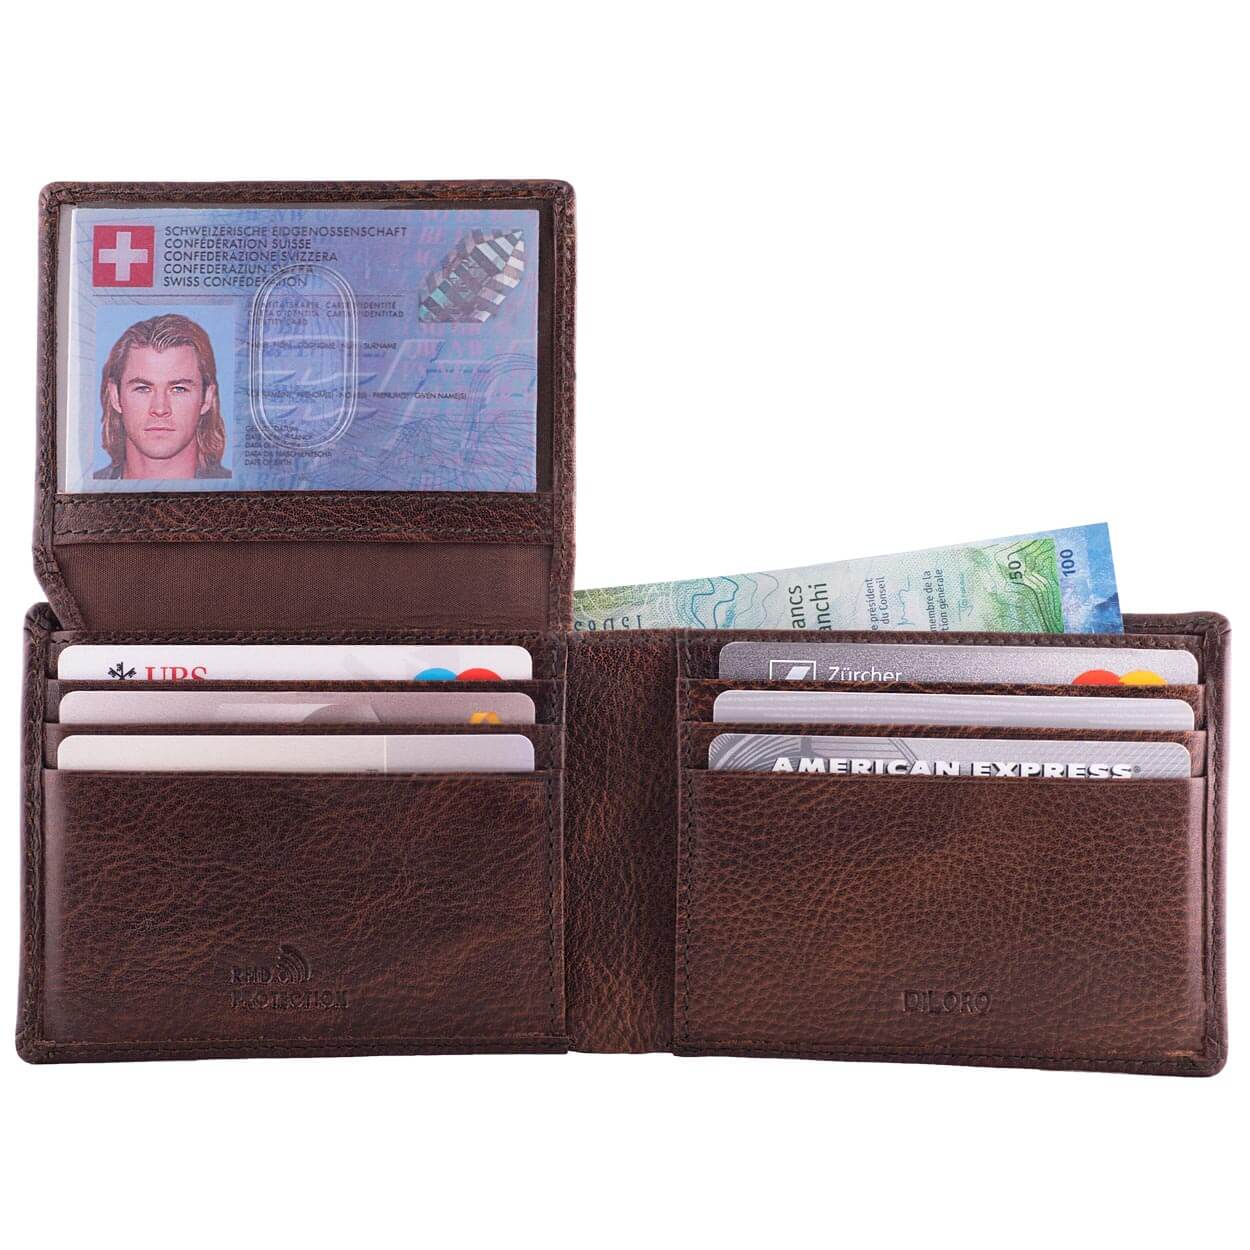 DiLoro Men's Slim Leather Wallet 2 ID Windows Gemini Brown - Open with ID Window Up (cash not included!)